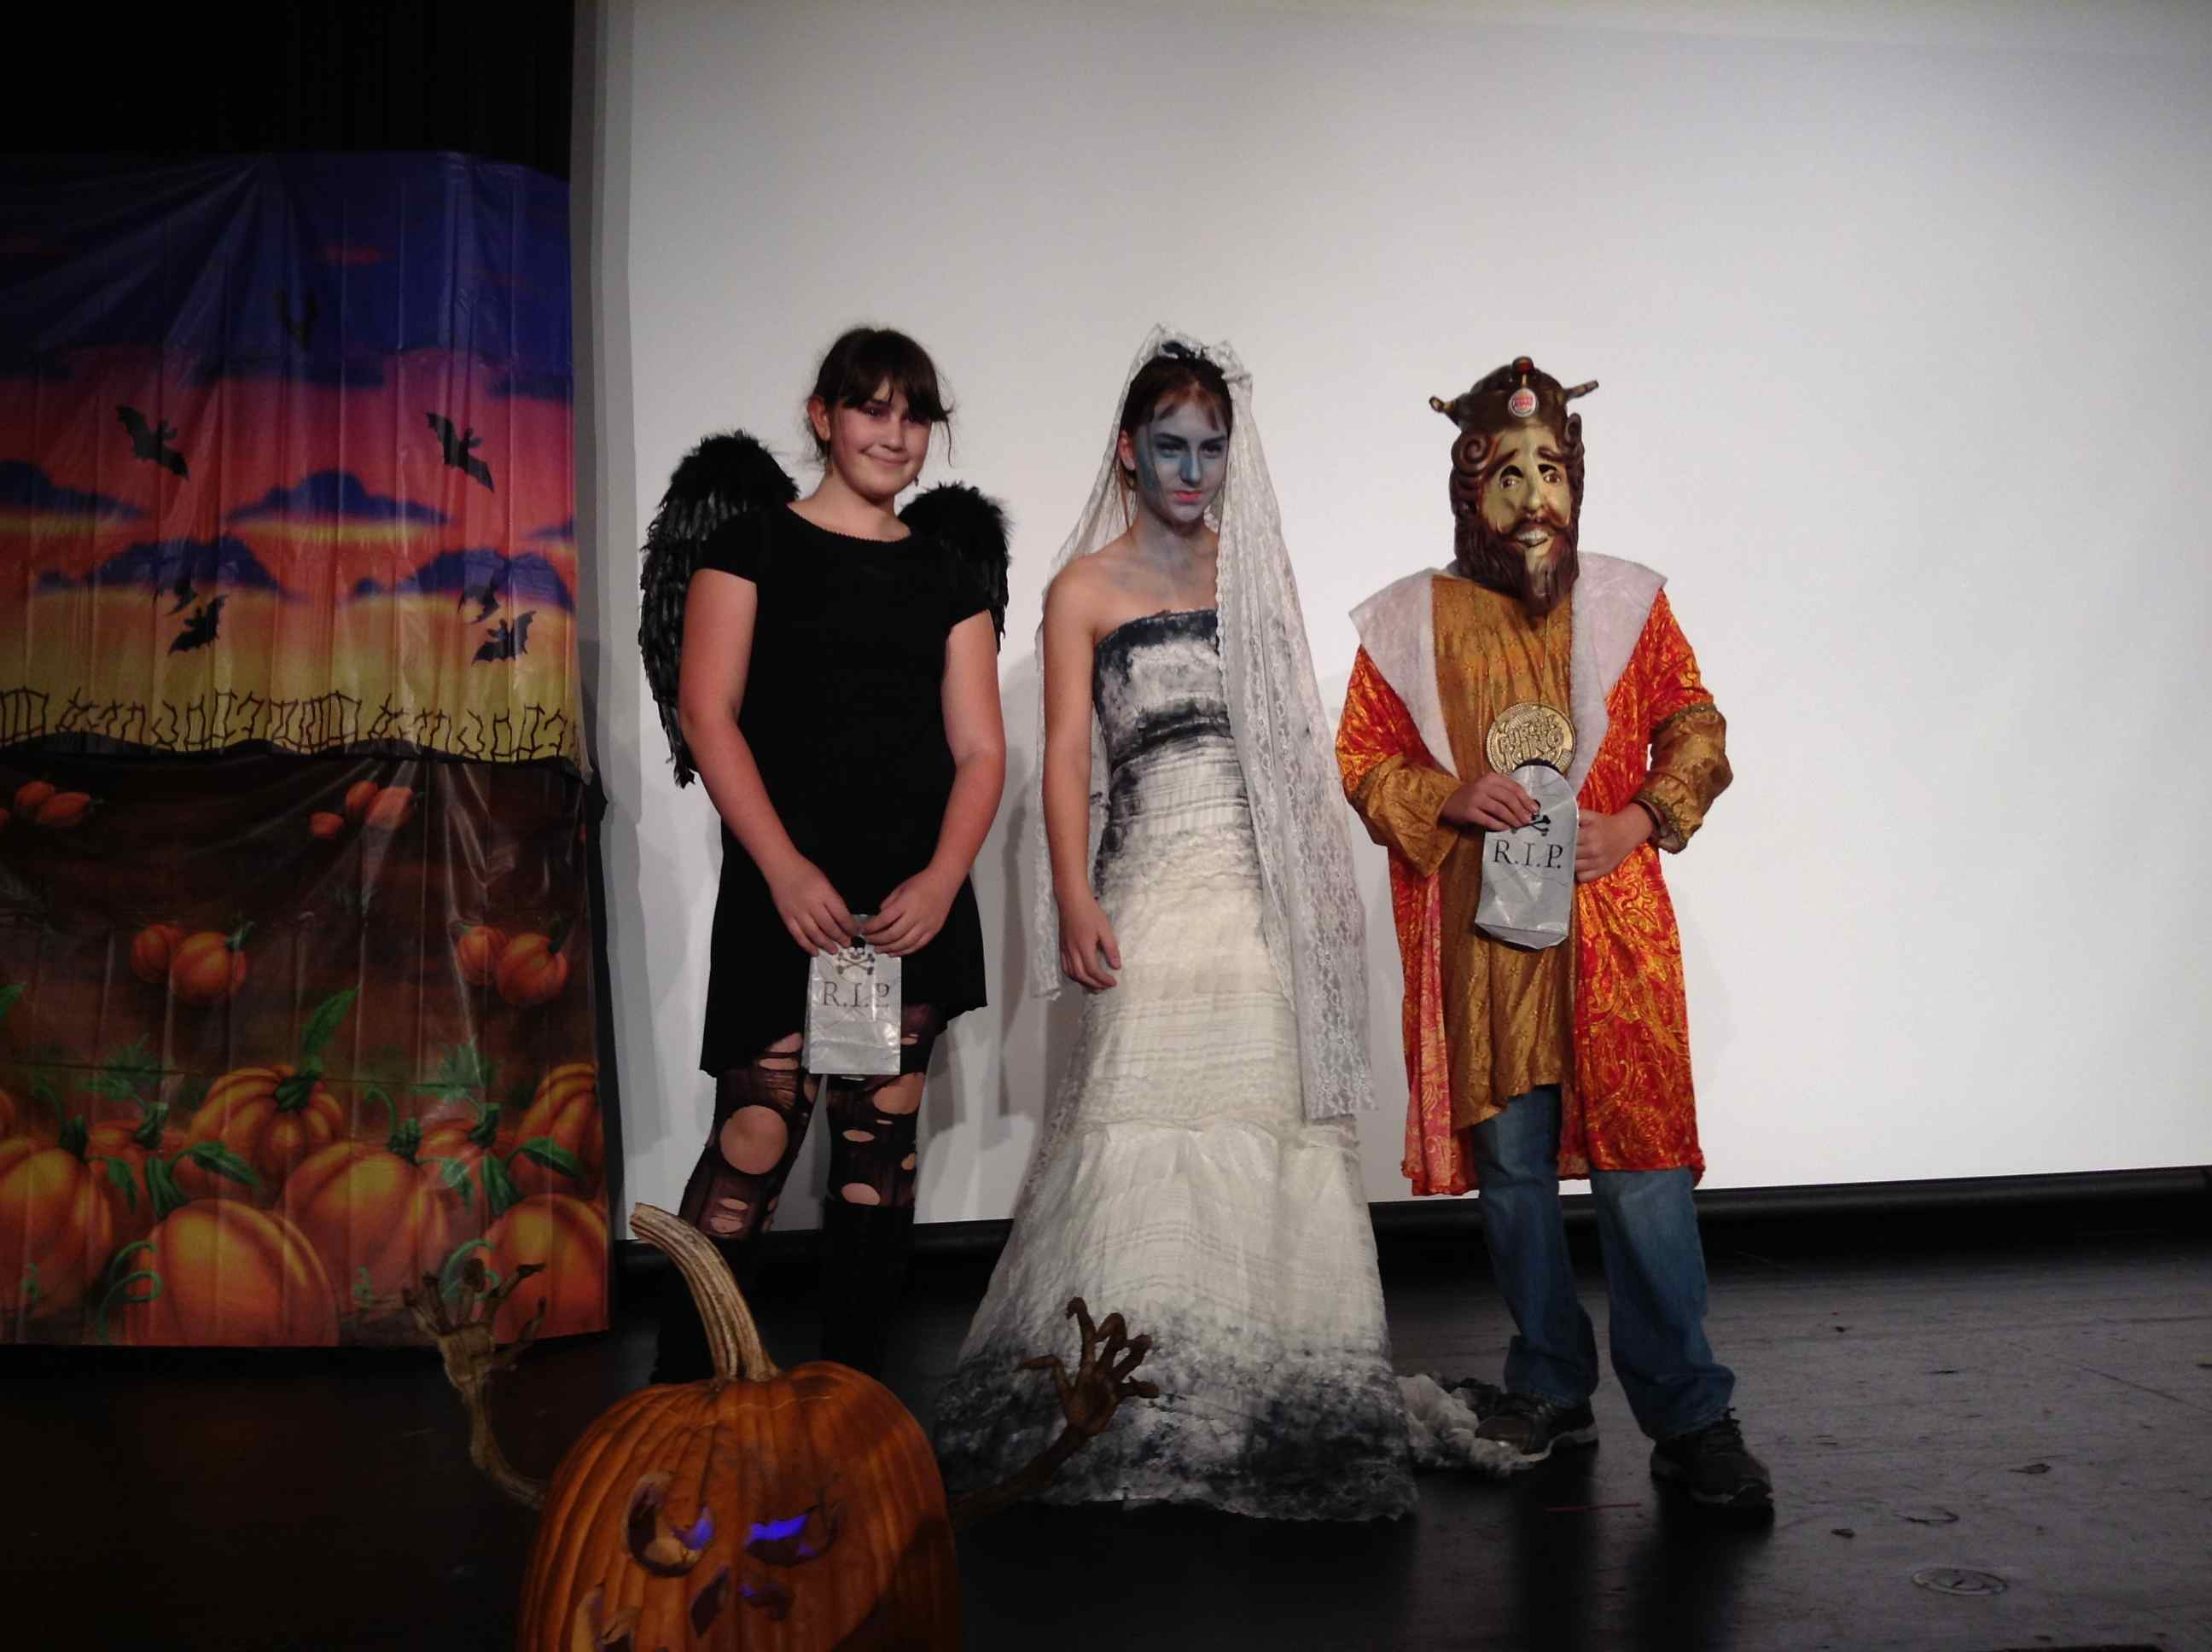 DFMS Newspaper : Party Rockin' At This Year's Halloween Dance!